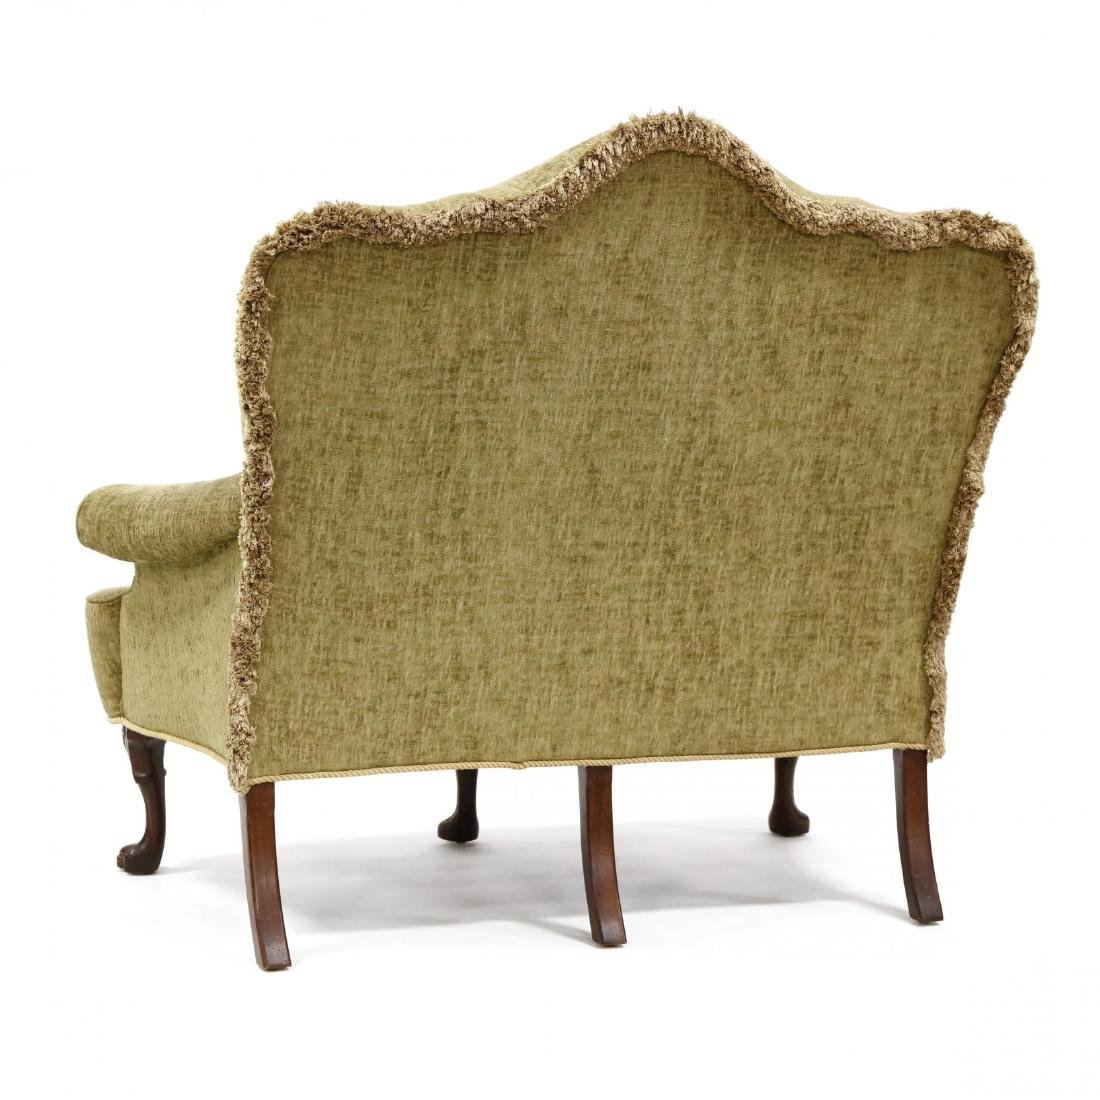 Queen Anne Style Overupholstered Settee - 3